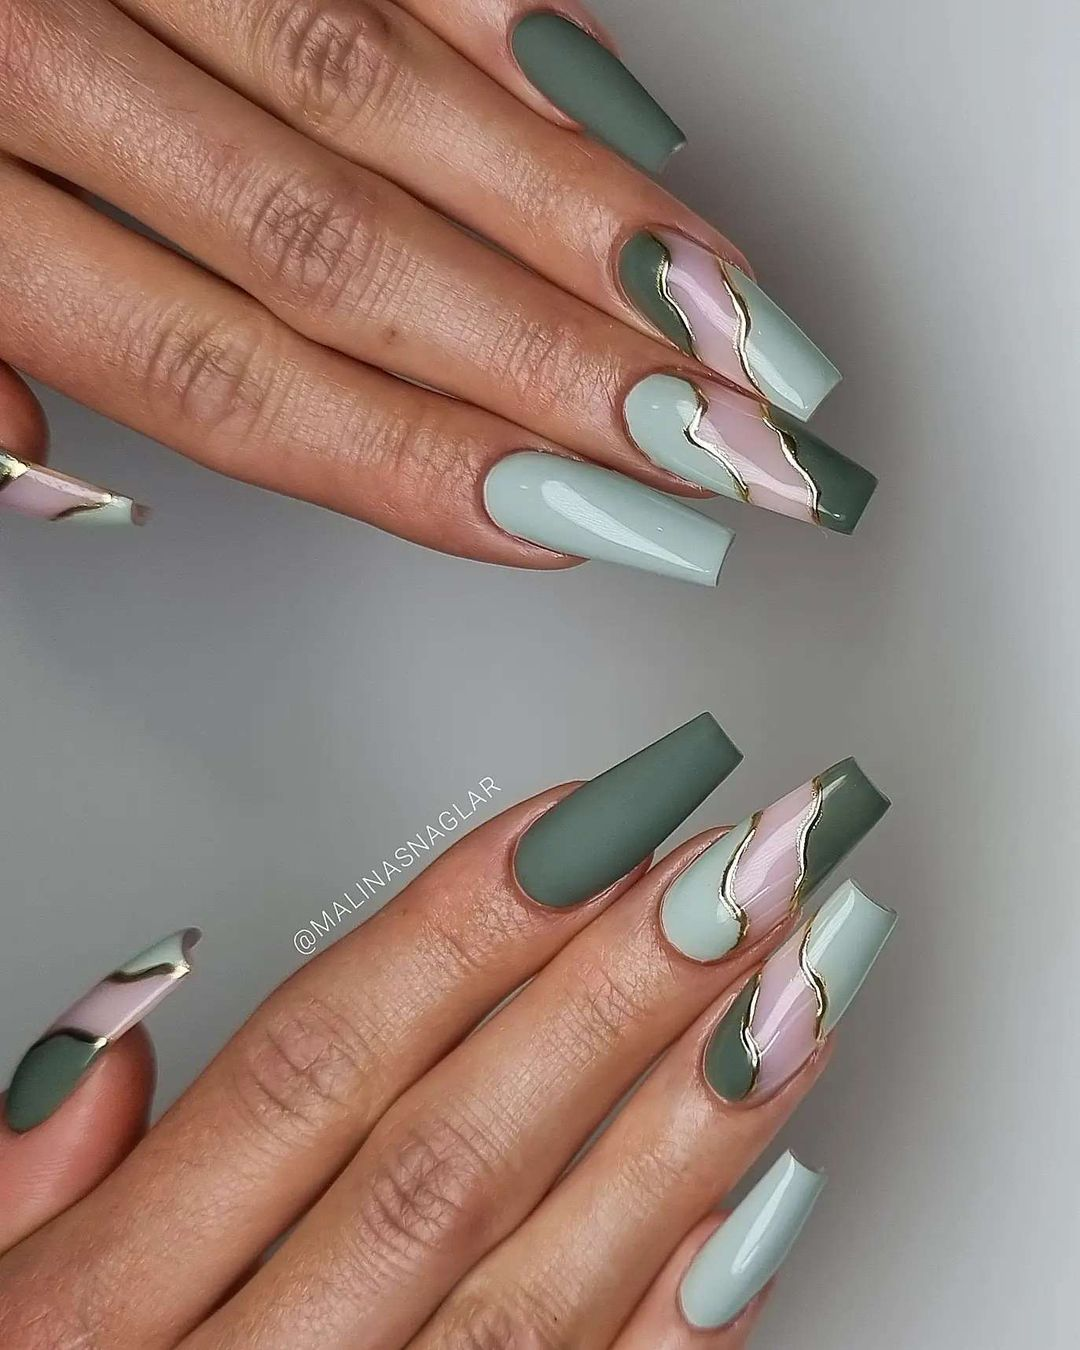 Sage green and pink swirl nails with gold detailing